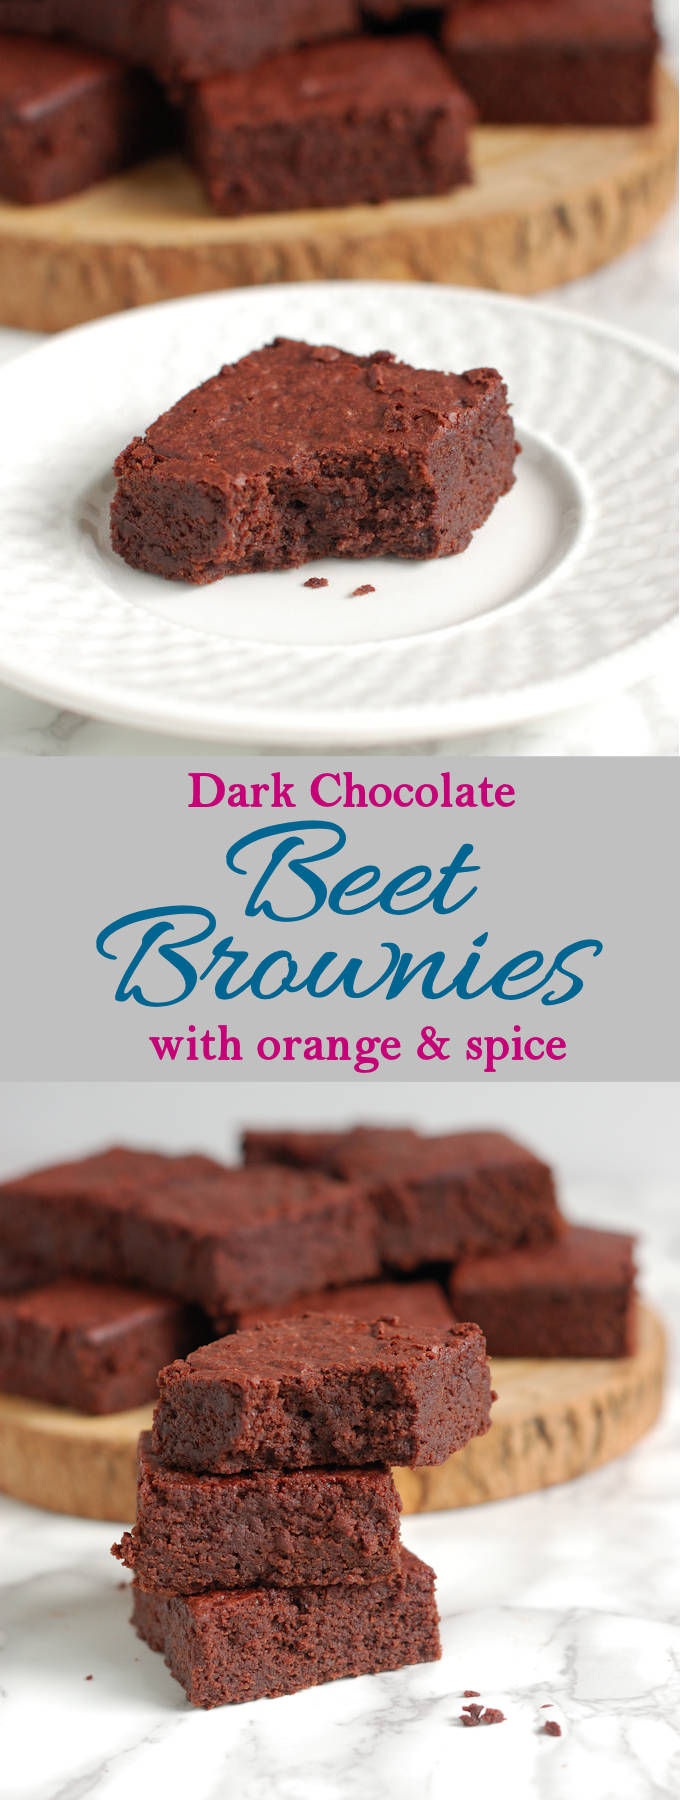 Roasted red beets make these brownies super moist with a special flavor. A little orange and spice are the perfect compliments to the beet flavor.